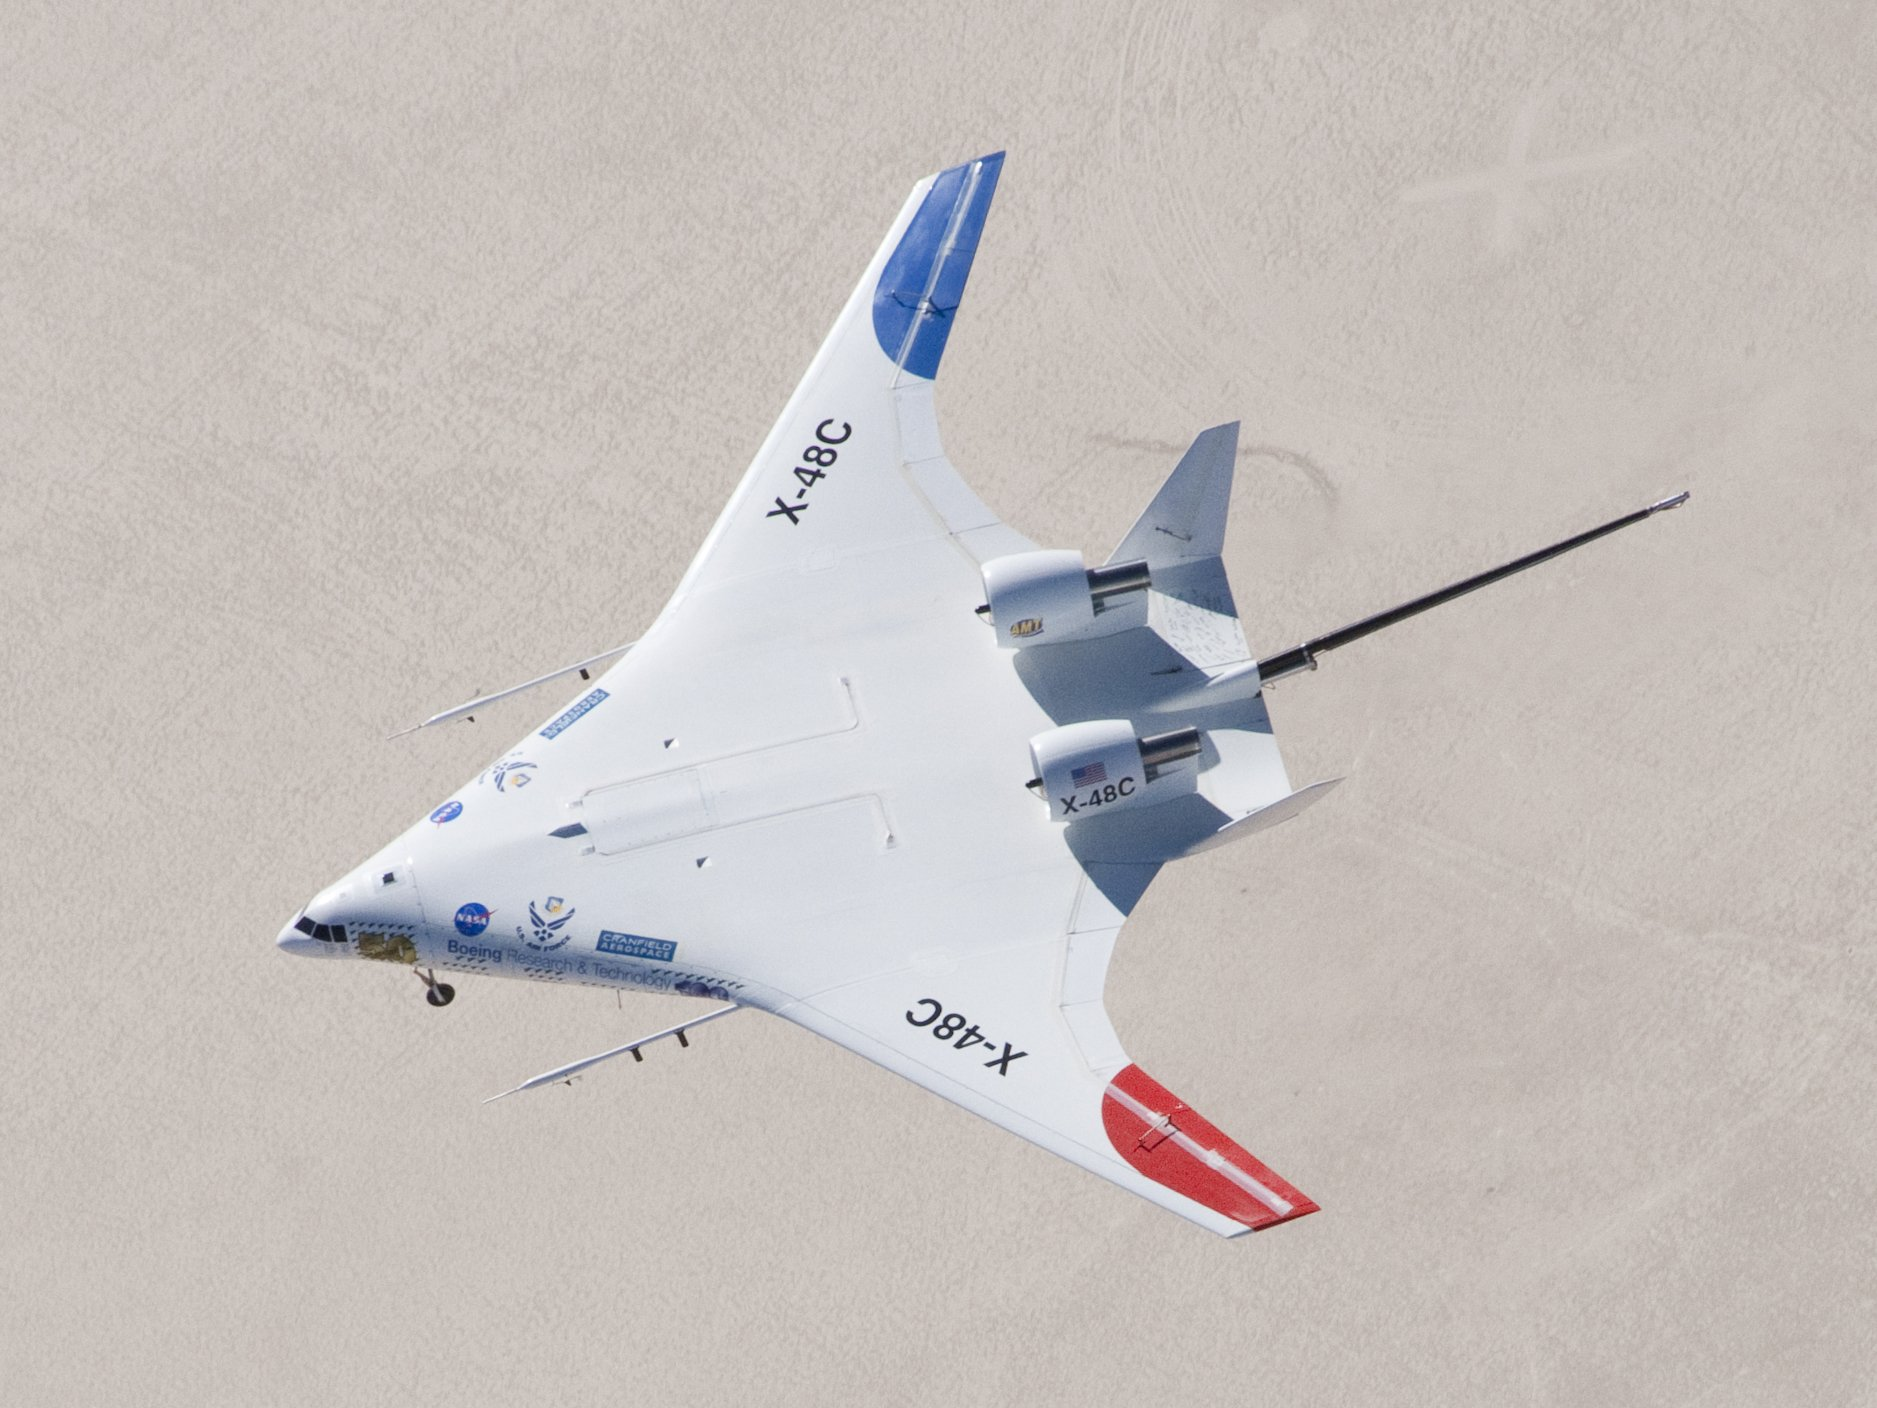 nasa x 48 drone aircraft - photo #7